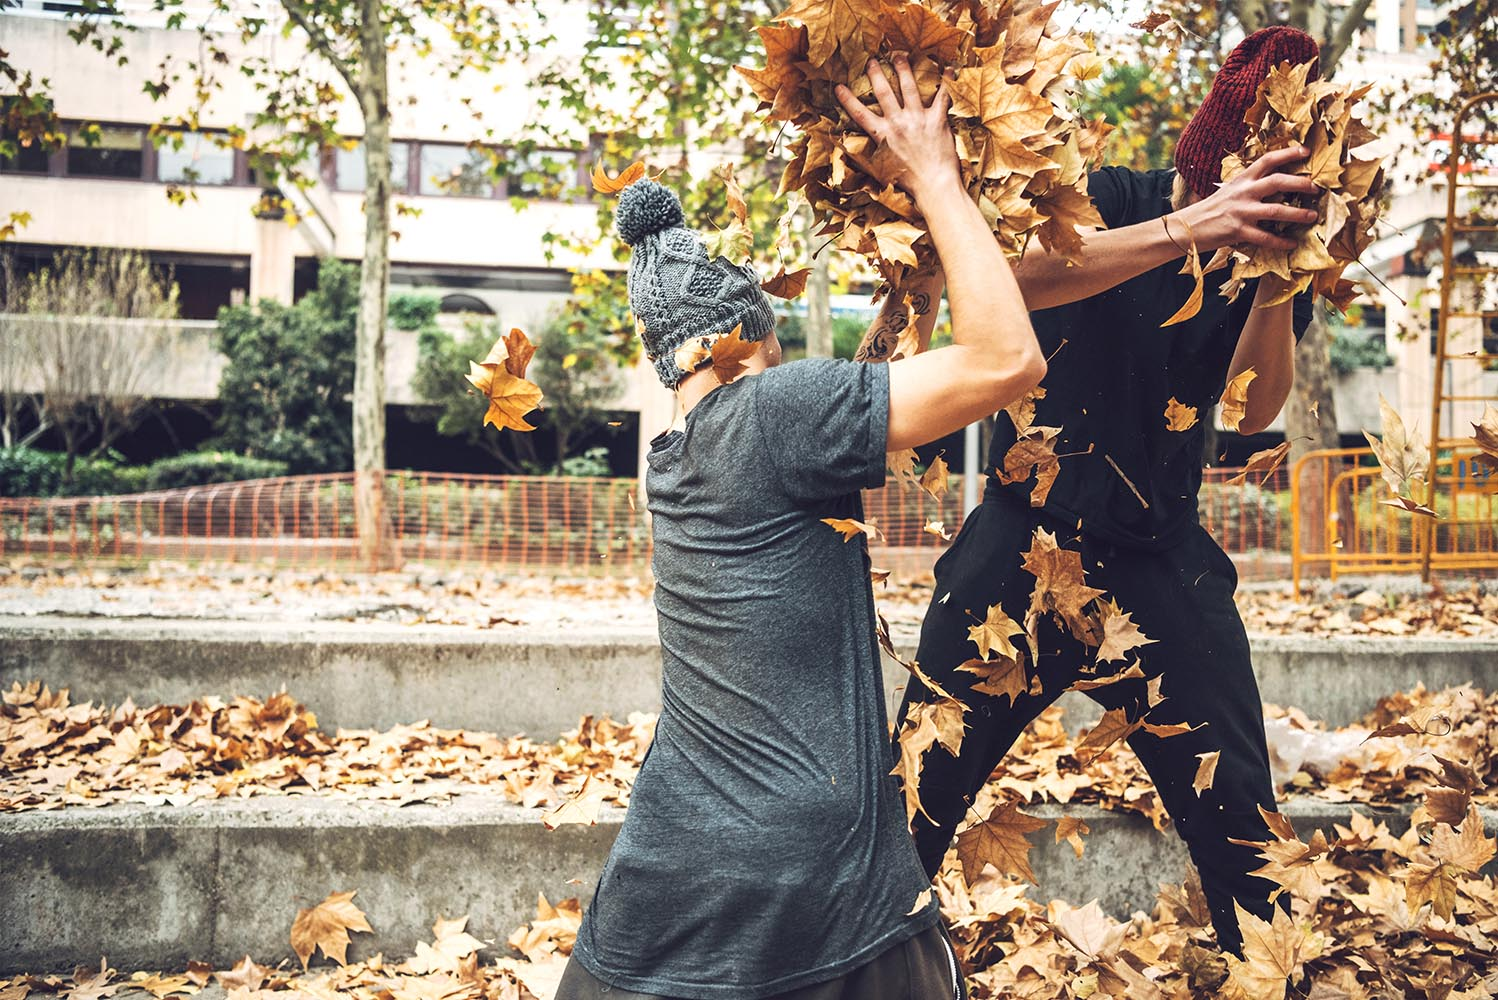 Freerunners playing with leaves in park